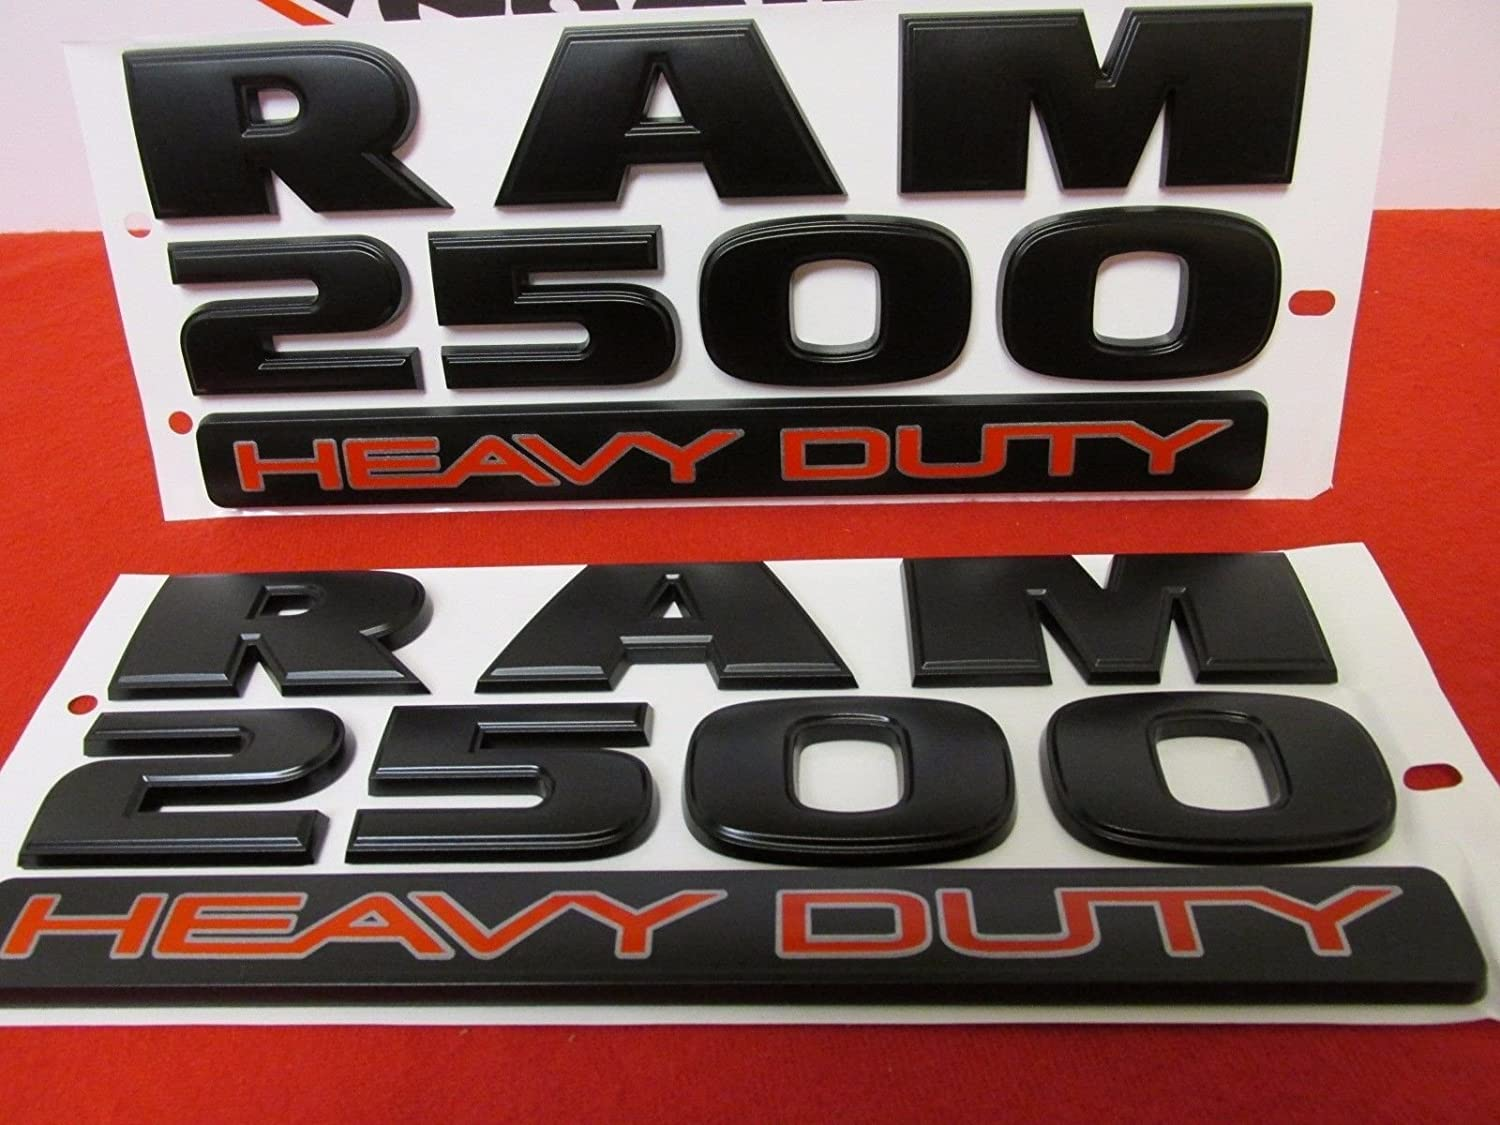 Yoaoo 3x OEM Black RAM 2500 HEAVY DUTY Plus 4x4 Emblem Badge 3D Emblem Decals Nameplates Flat Letter Matte